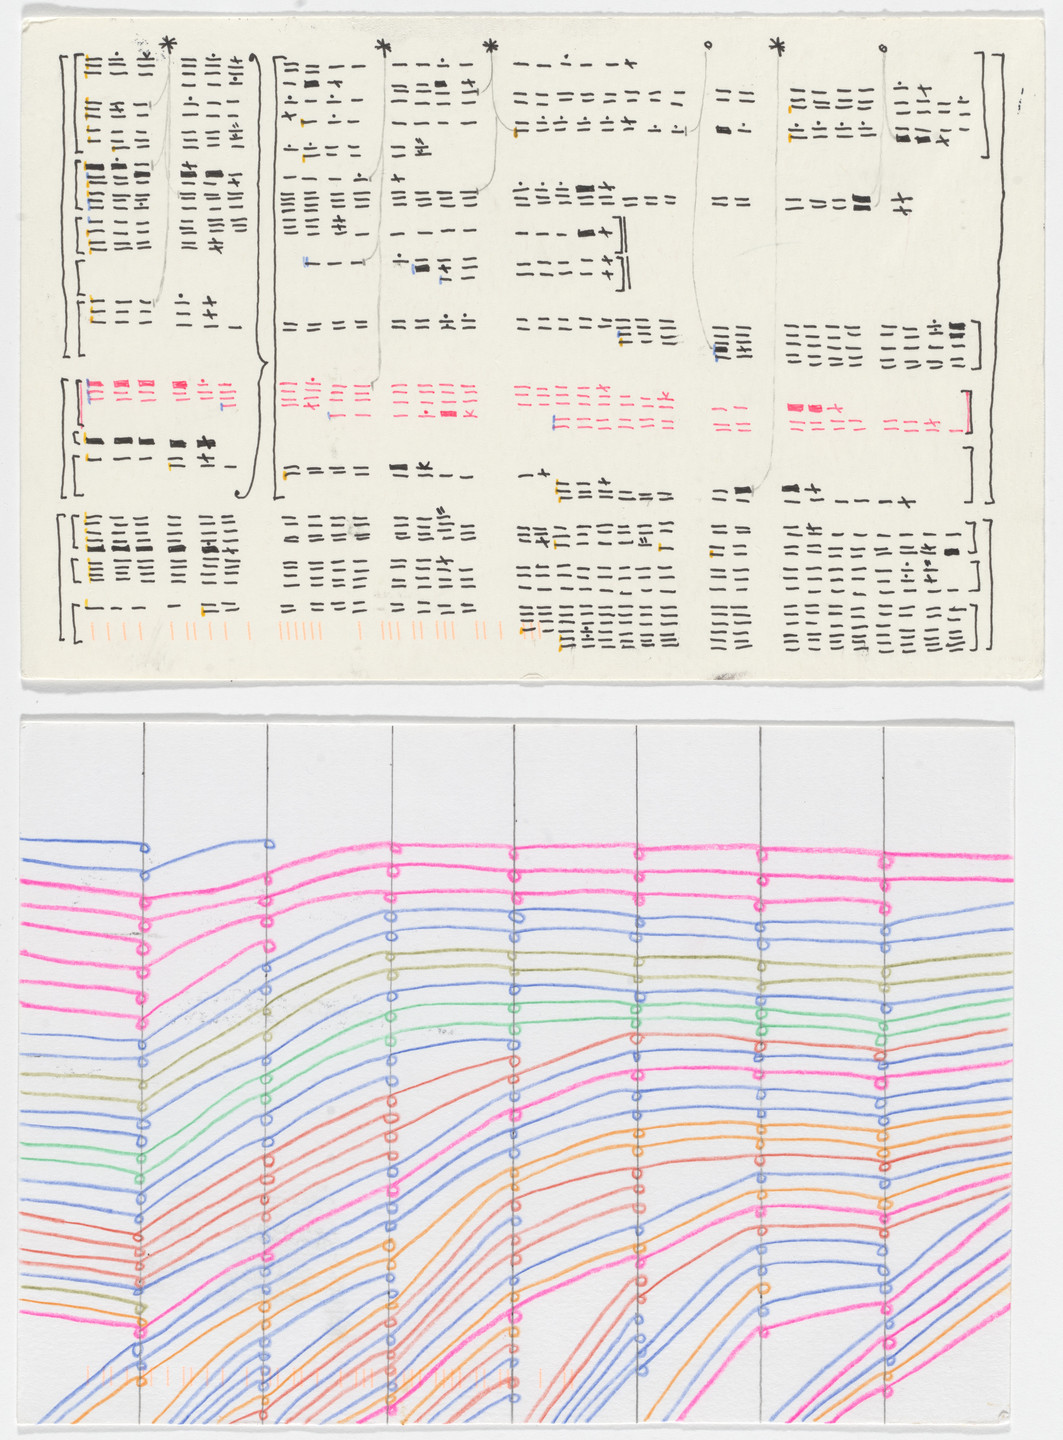 Giorgia Lupi, Stefanie Posavec. Dear Data: Week 10 (To-Do Lists / A Week of To-Dos). 2014